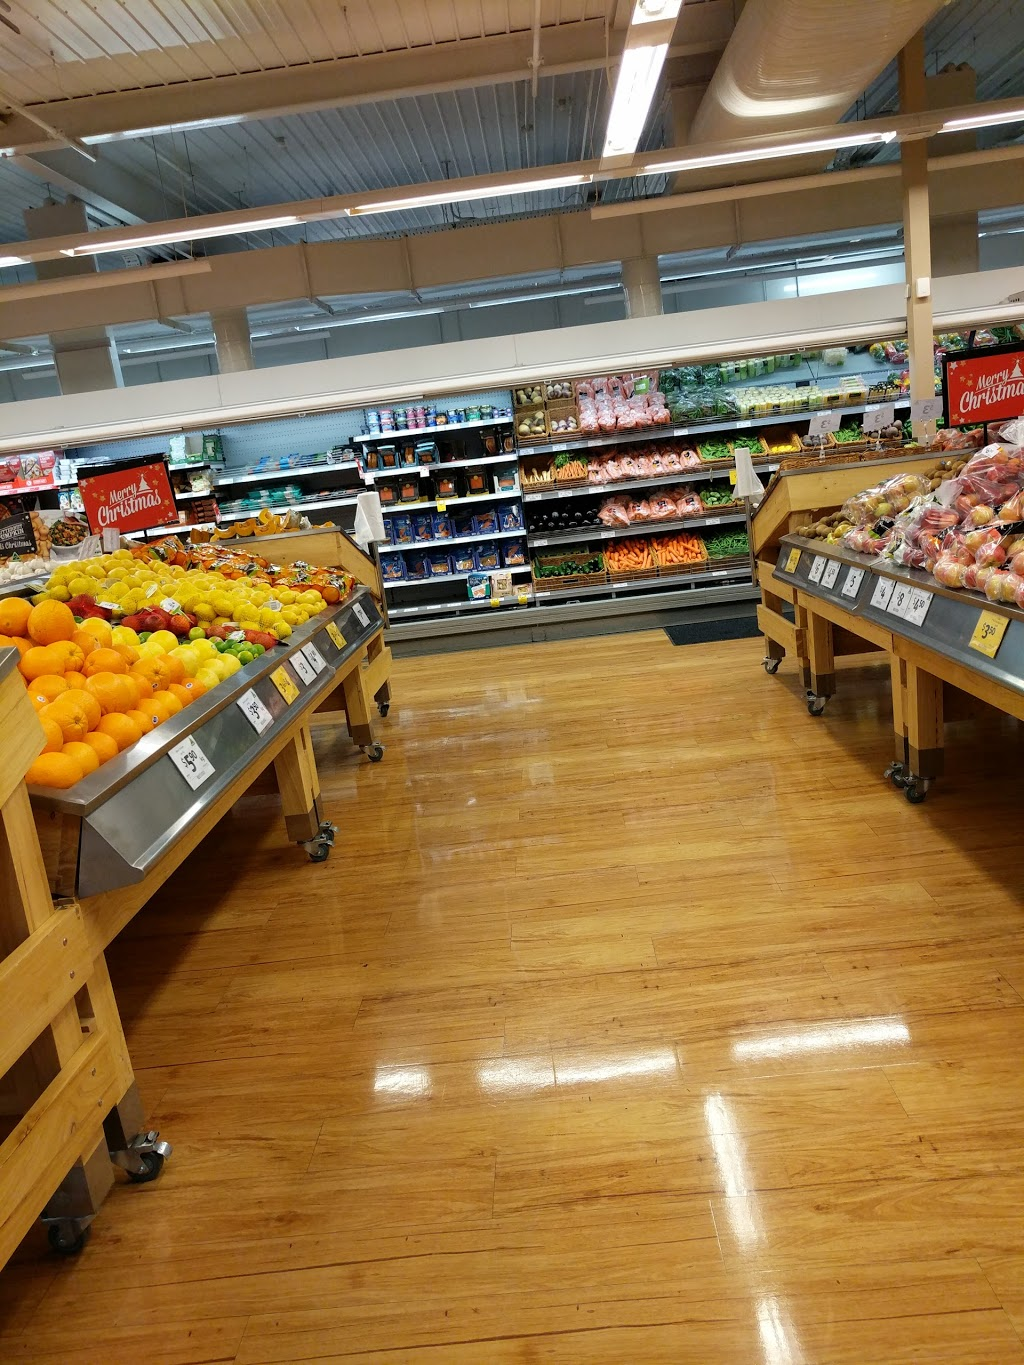 Coles Geelong West   supermarket   166-188 Shannon Ave, Geelong West VIC 3218, Australia   0352238100 OR +61 3 5223 8100